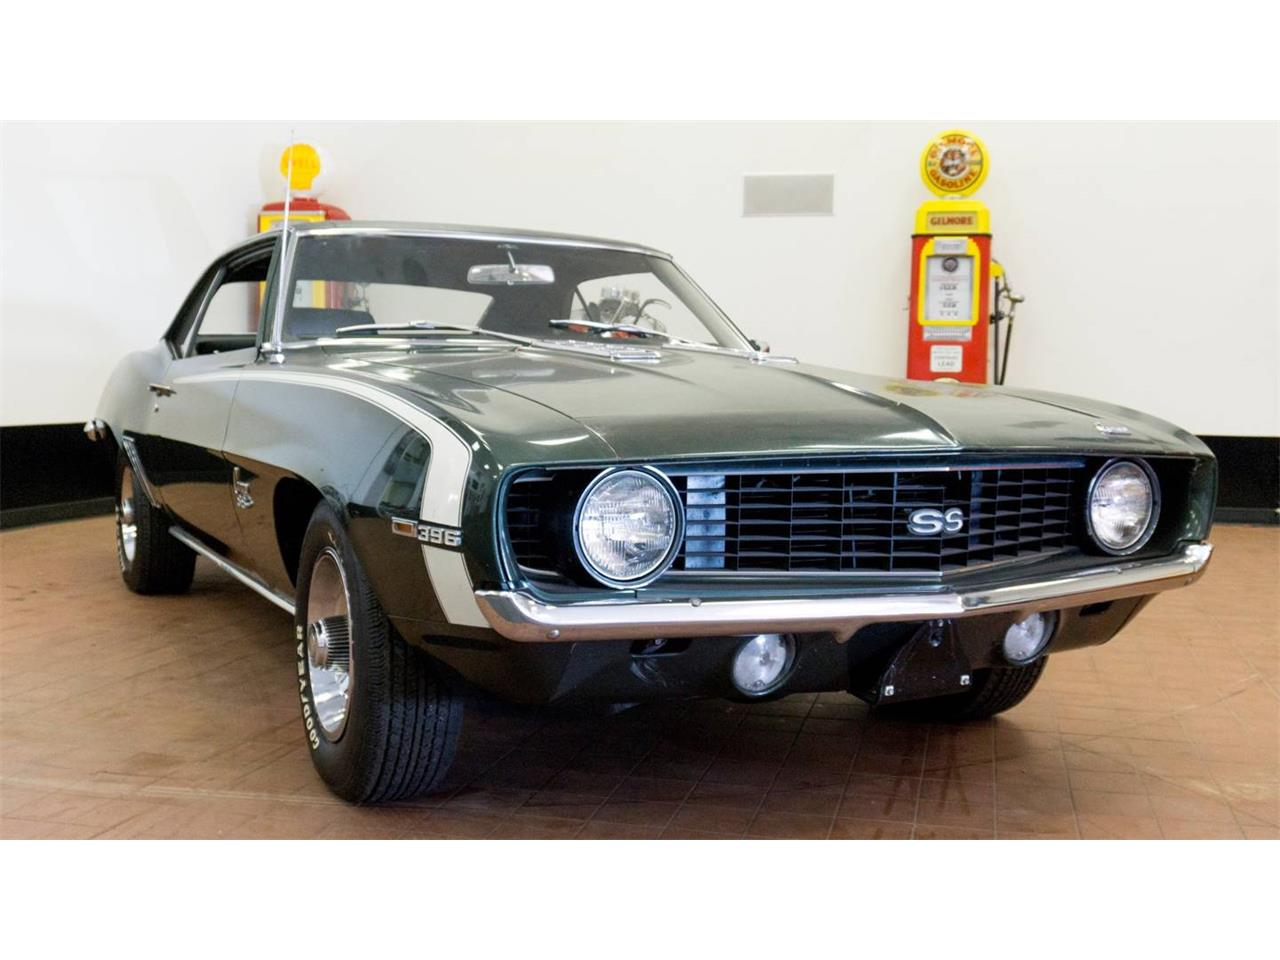 Large Picture of '69 Camaro SS located in New Orleans Louisiana Auction Vehicle Offered by Vicari Auction - NS73